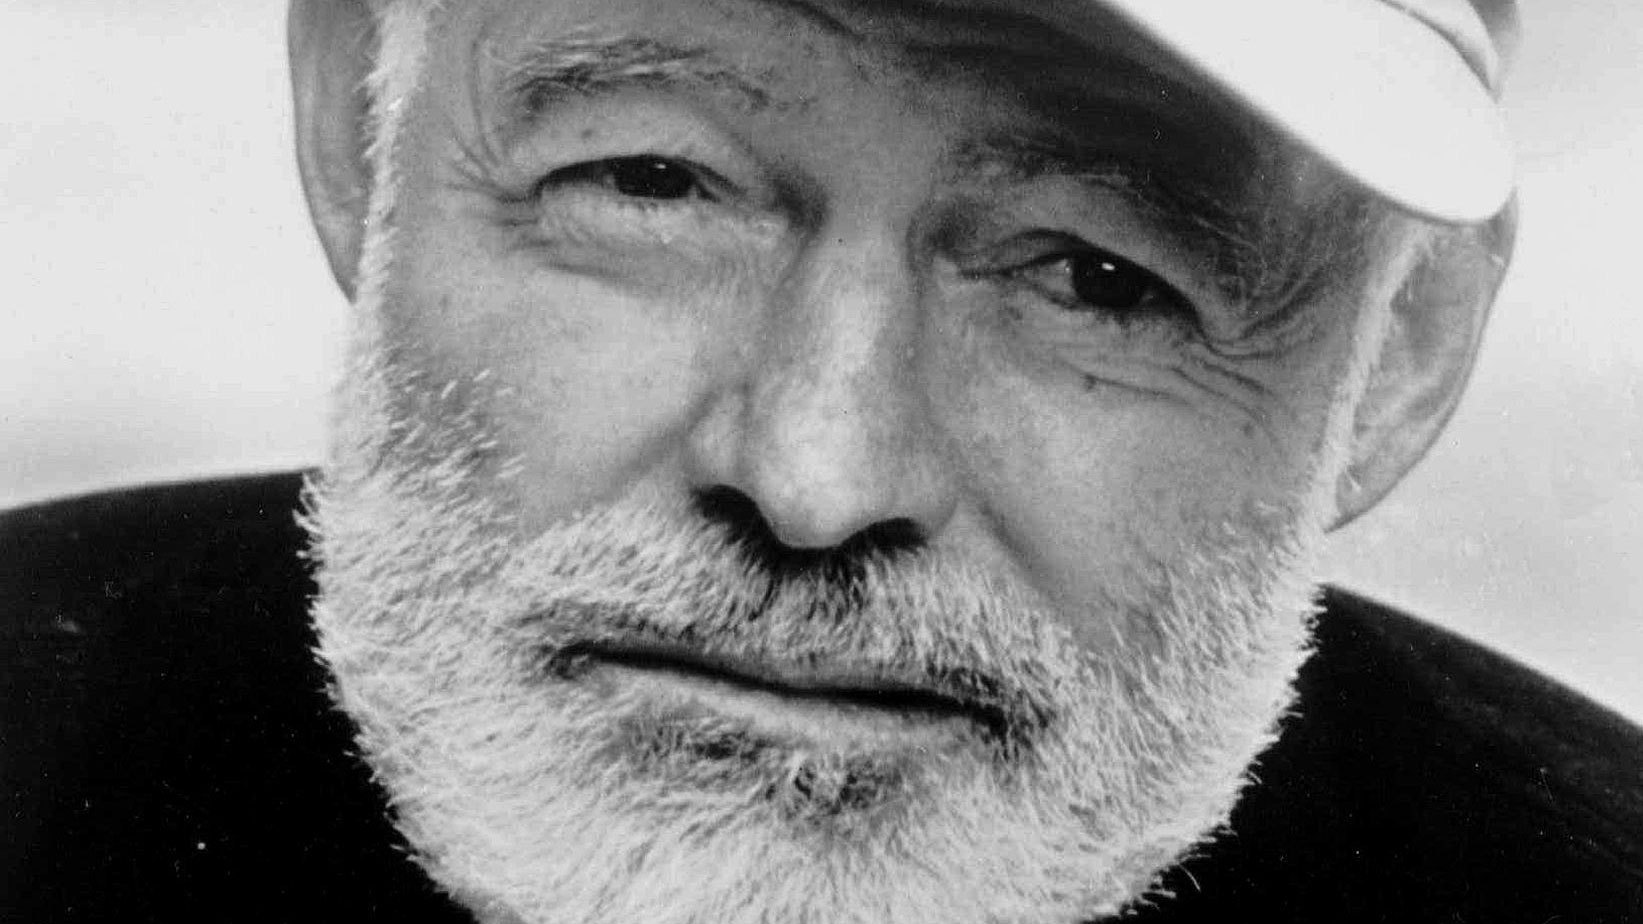 old man and sea ernest hemingway youth vs old age Youth vs old age essaysa clean, well-lighted place is another one of ernest hemingway's dense vignettes, filled with nuance but spare in style the anecdote revolves.